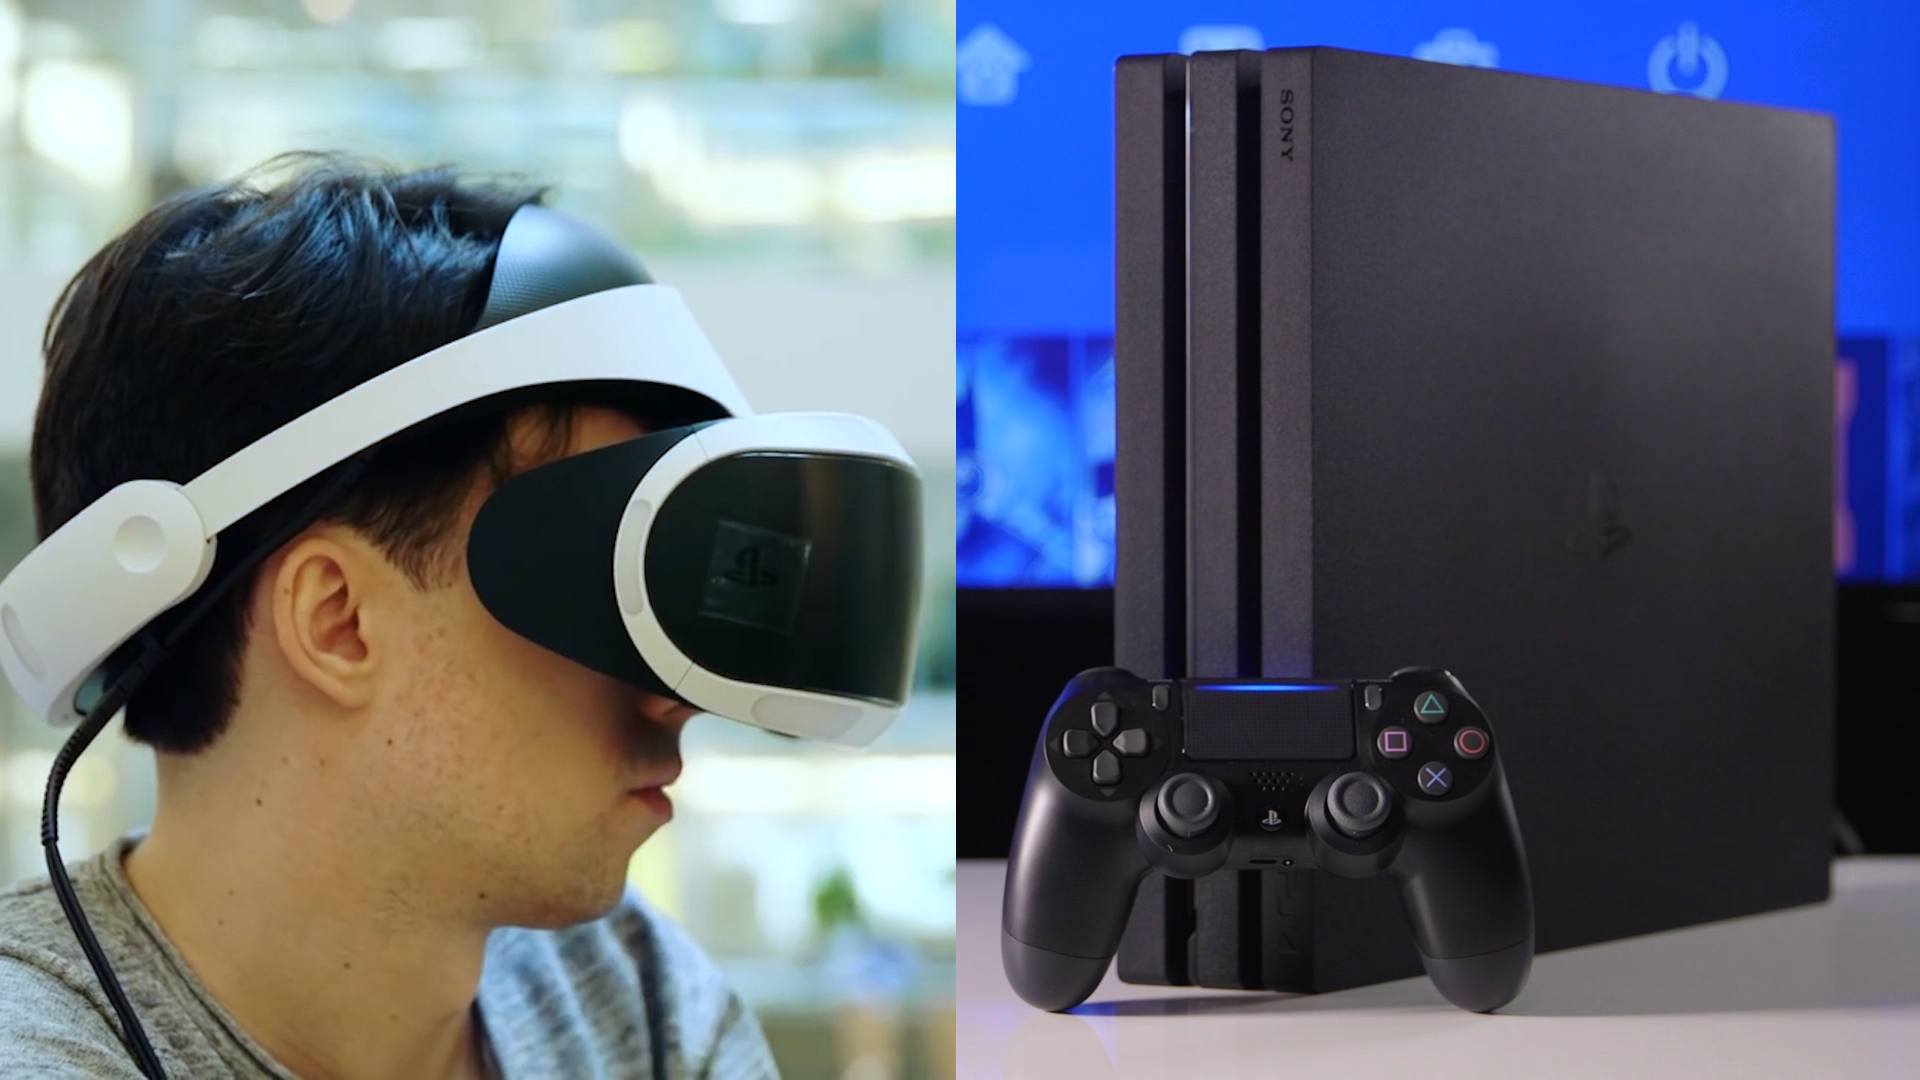 Ps4 Pro Vs Playstation Vr Which Should You Buy Head To